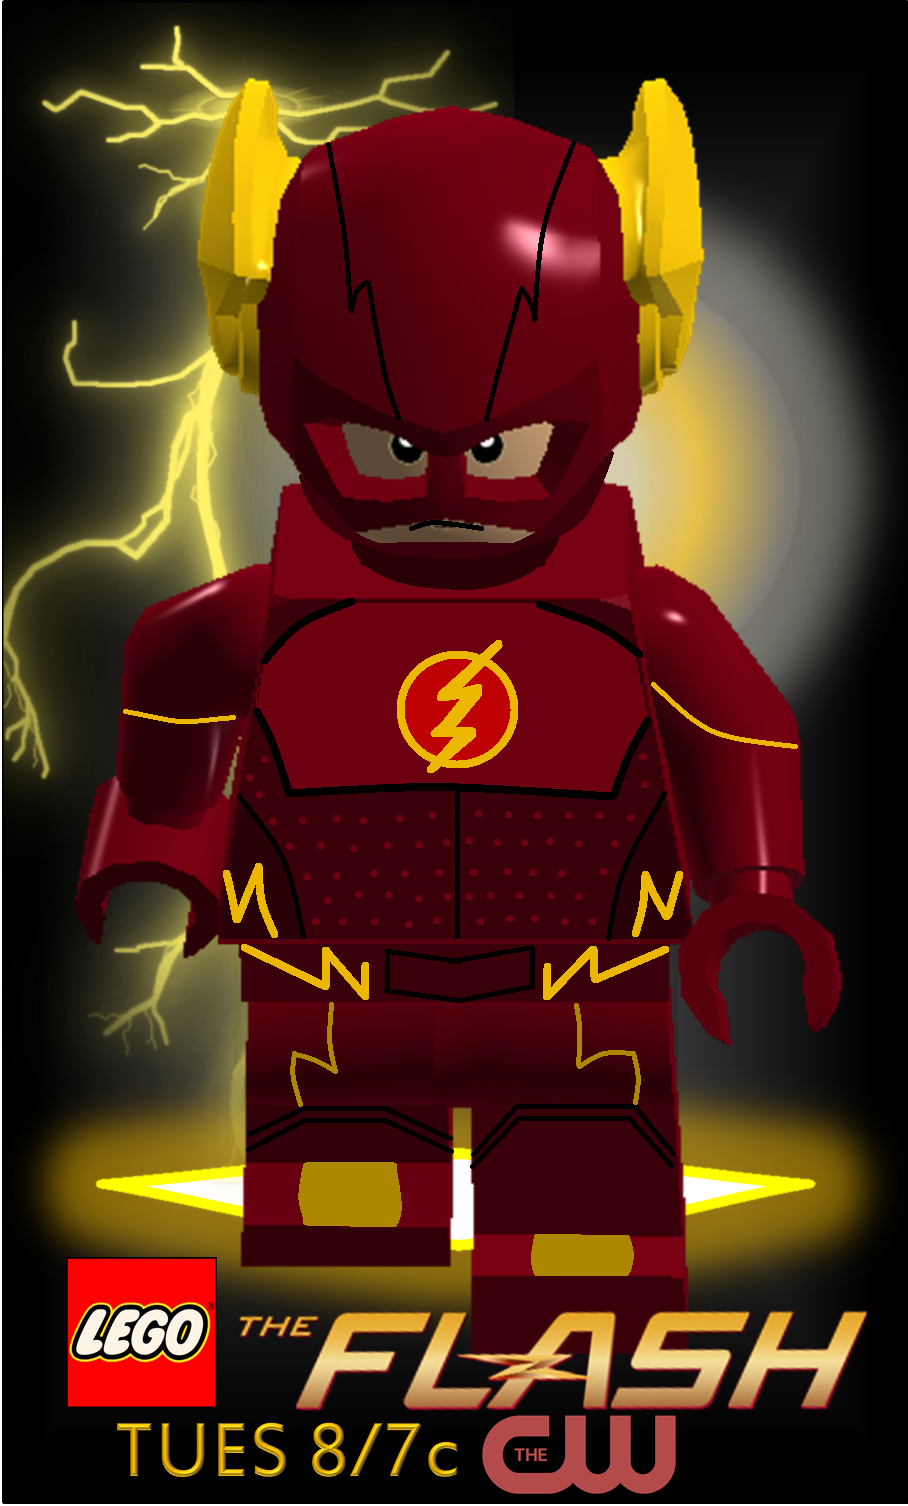 Lego Flash Poster.png